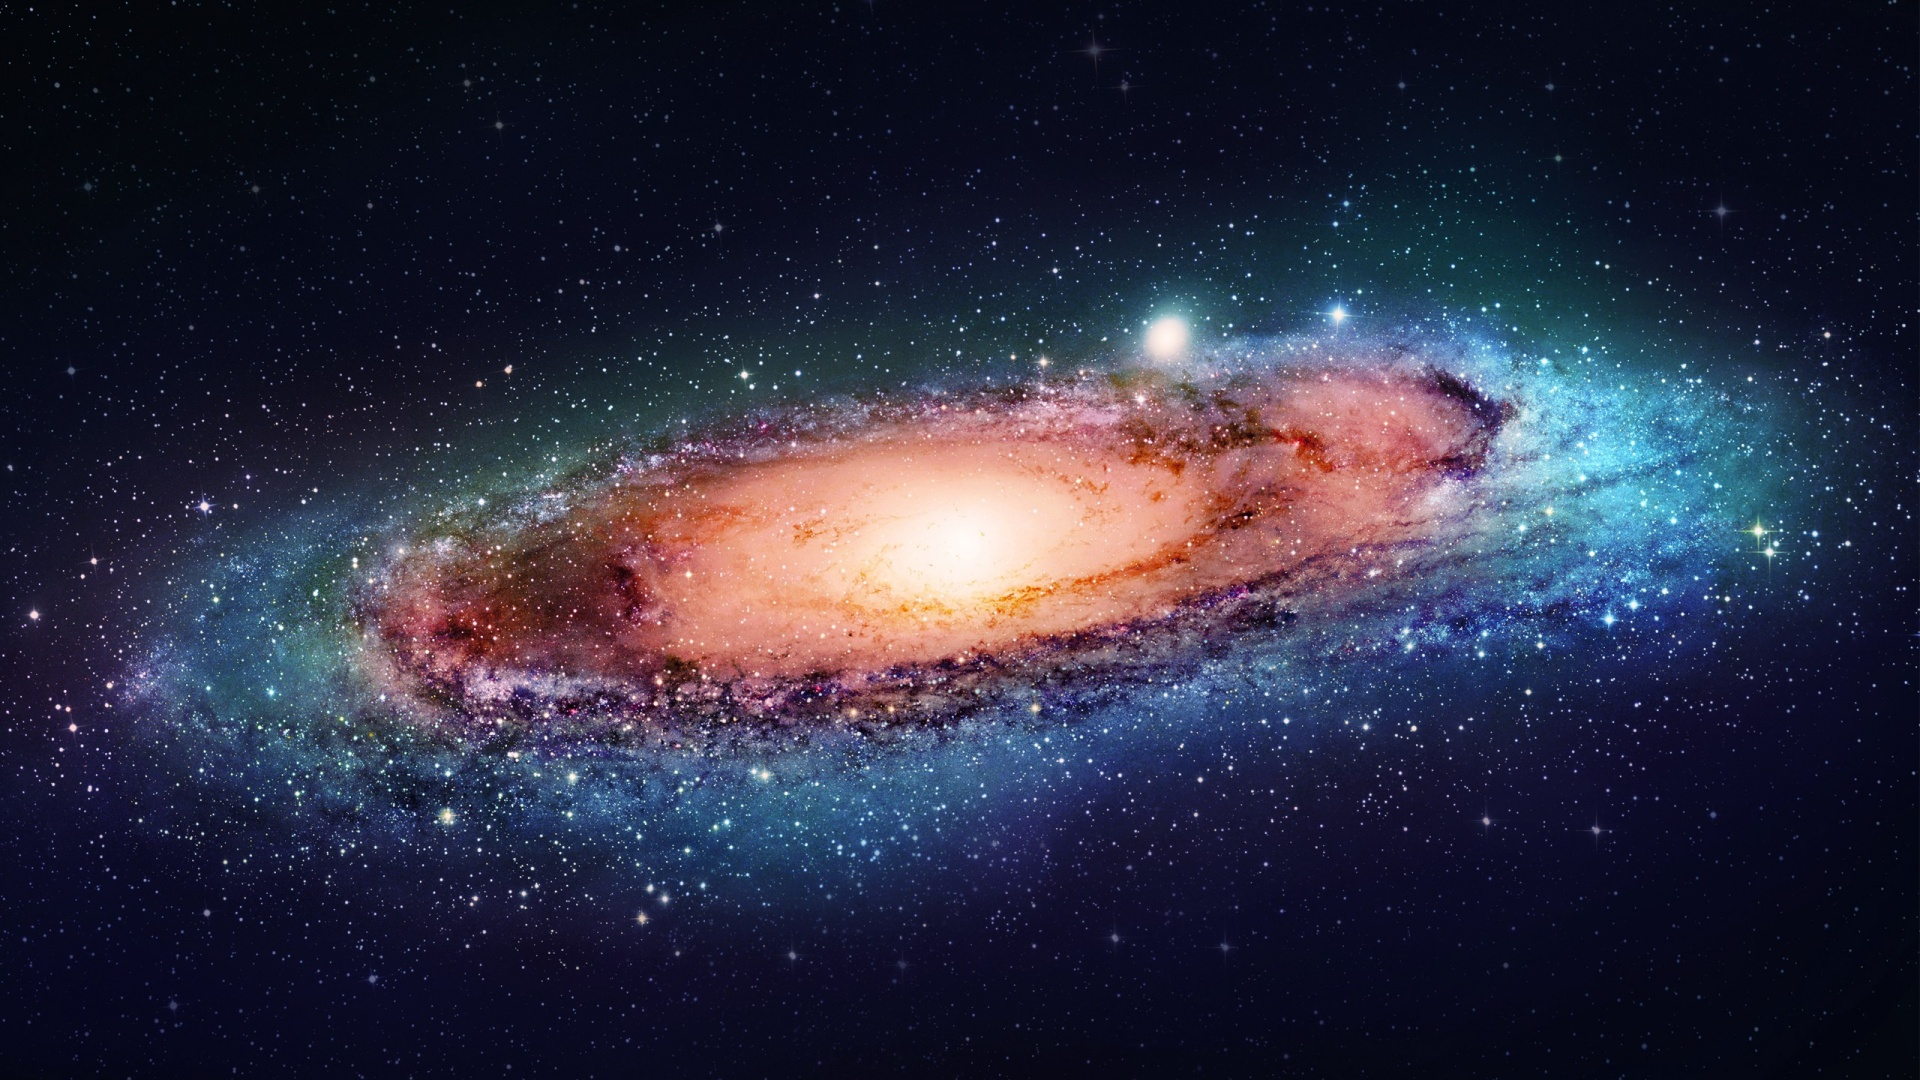 Andromeda Galaxy Space Wallpapers   1920x1080   756529 1920x1080